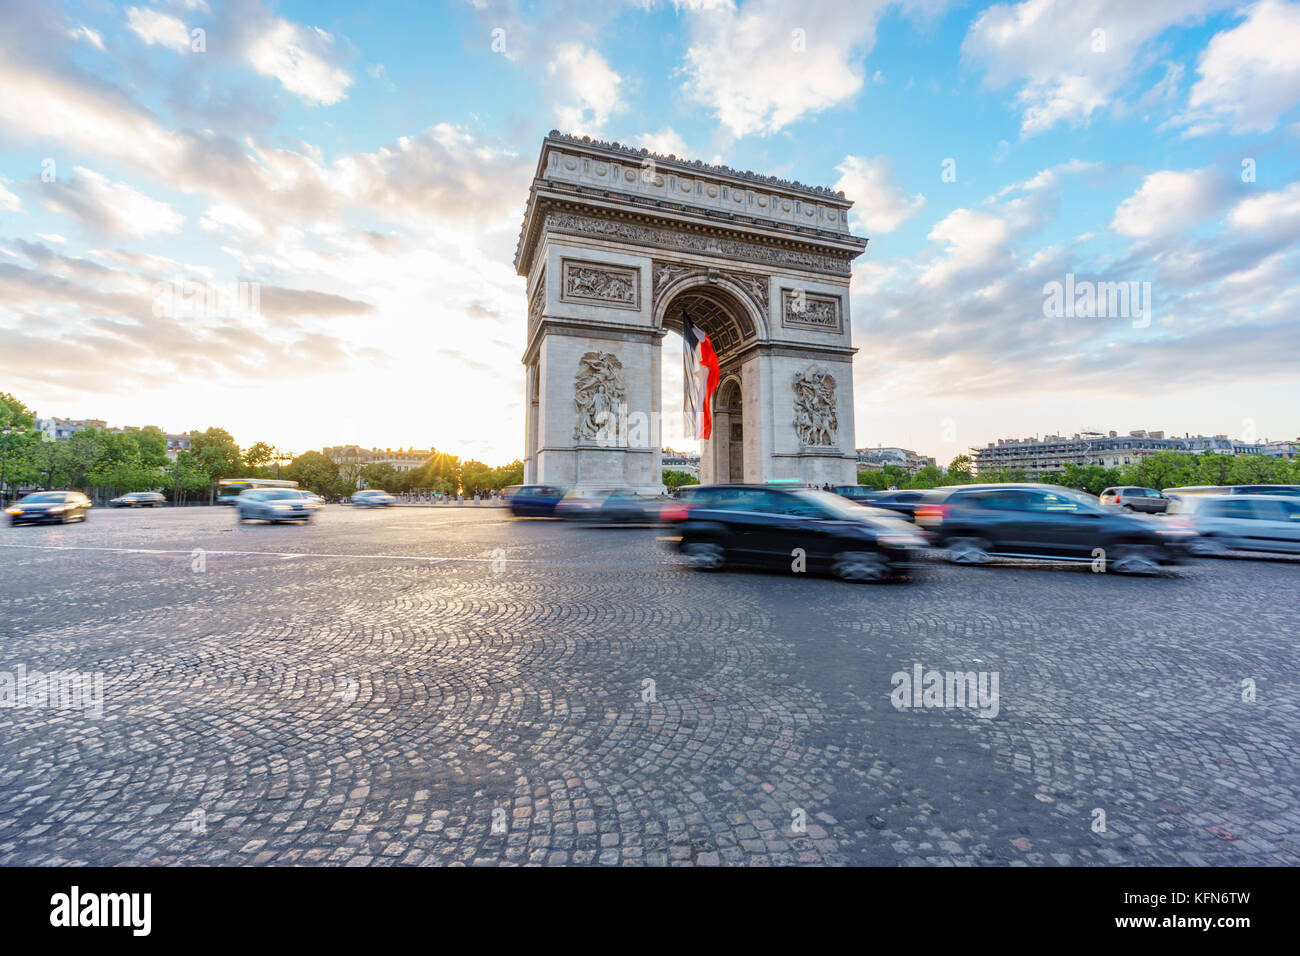 Arc de Triomphe and blurred traffic at sunset, wide angle - Stock Image